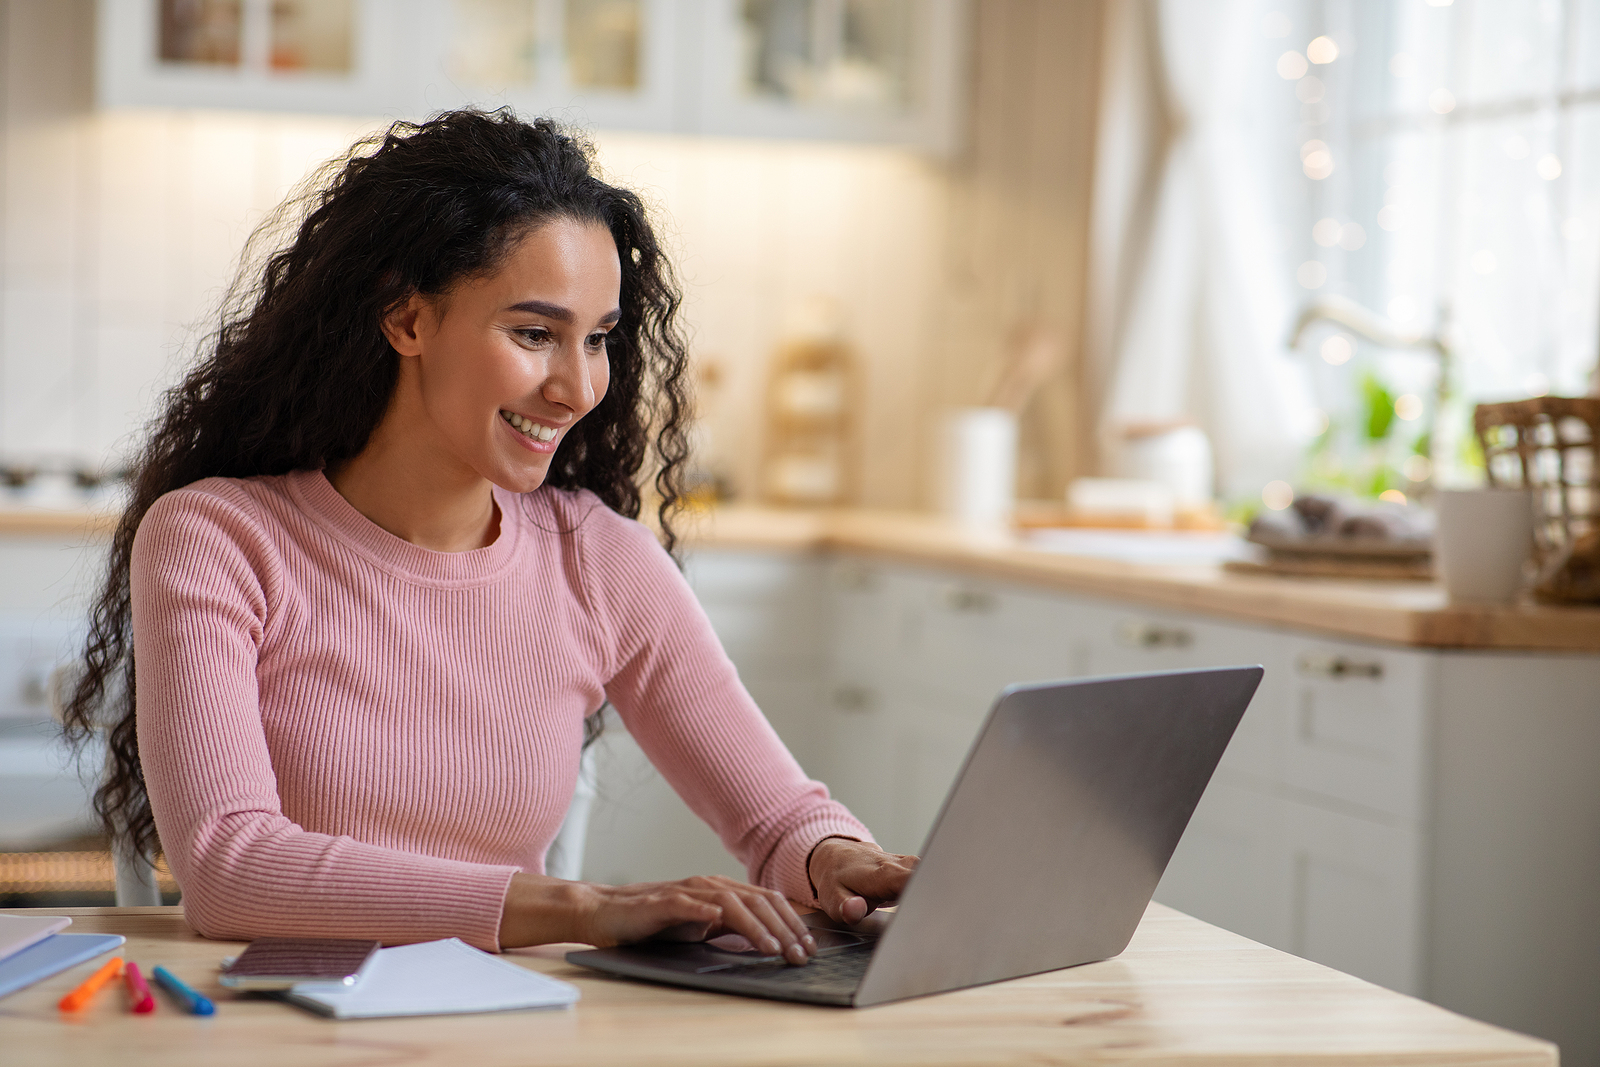 Woman looking at her pregnancy options online.